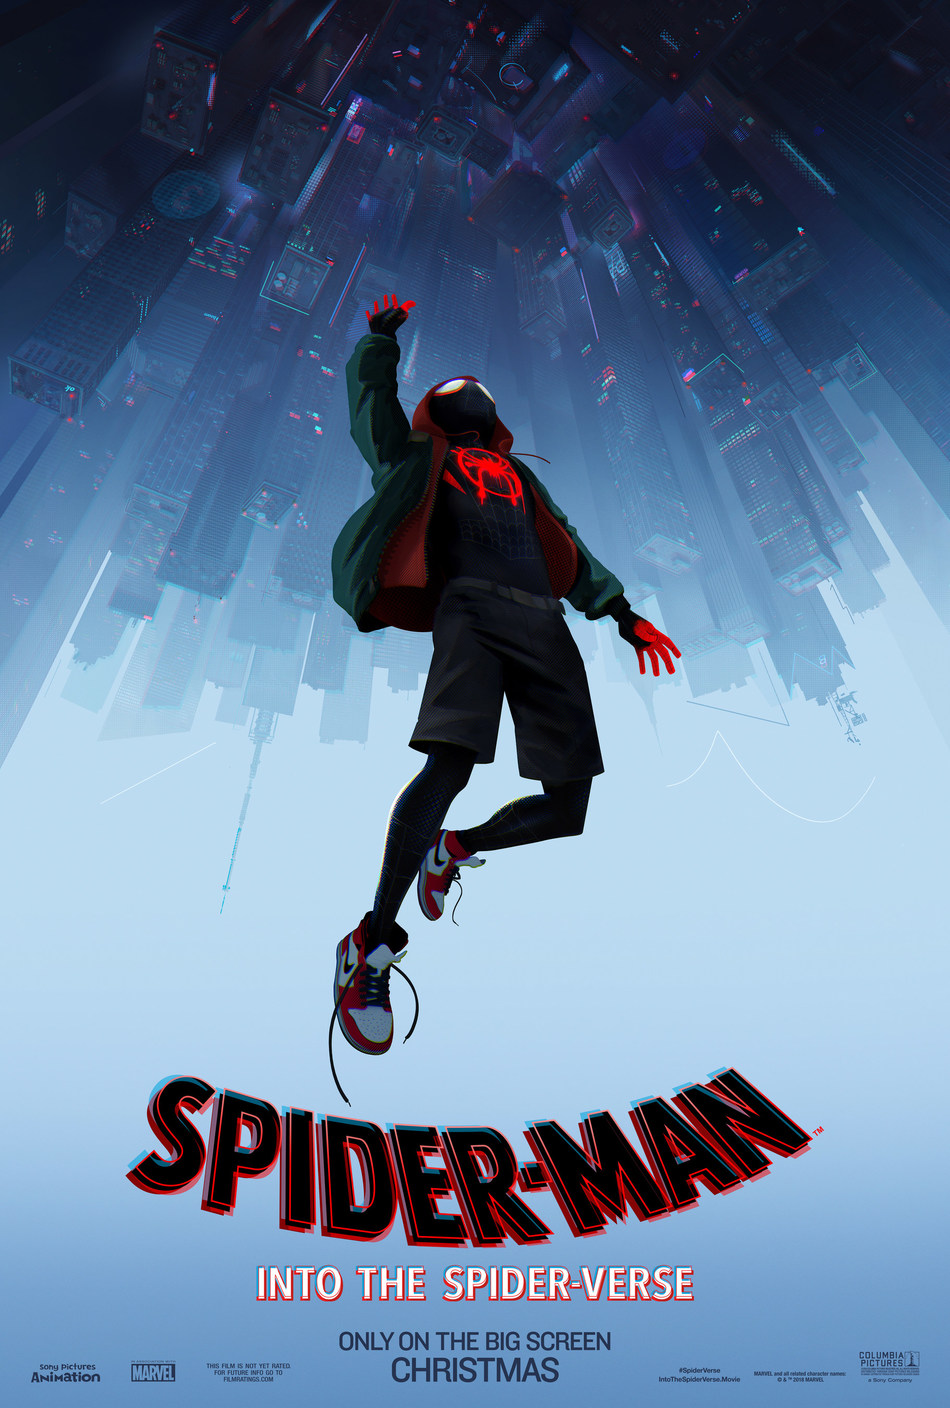 Spider-Man(tm): Into the Spider-Verse will be released in theaters nationwide on December 14, 2018.